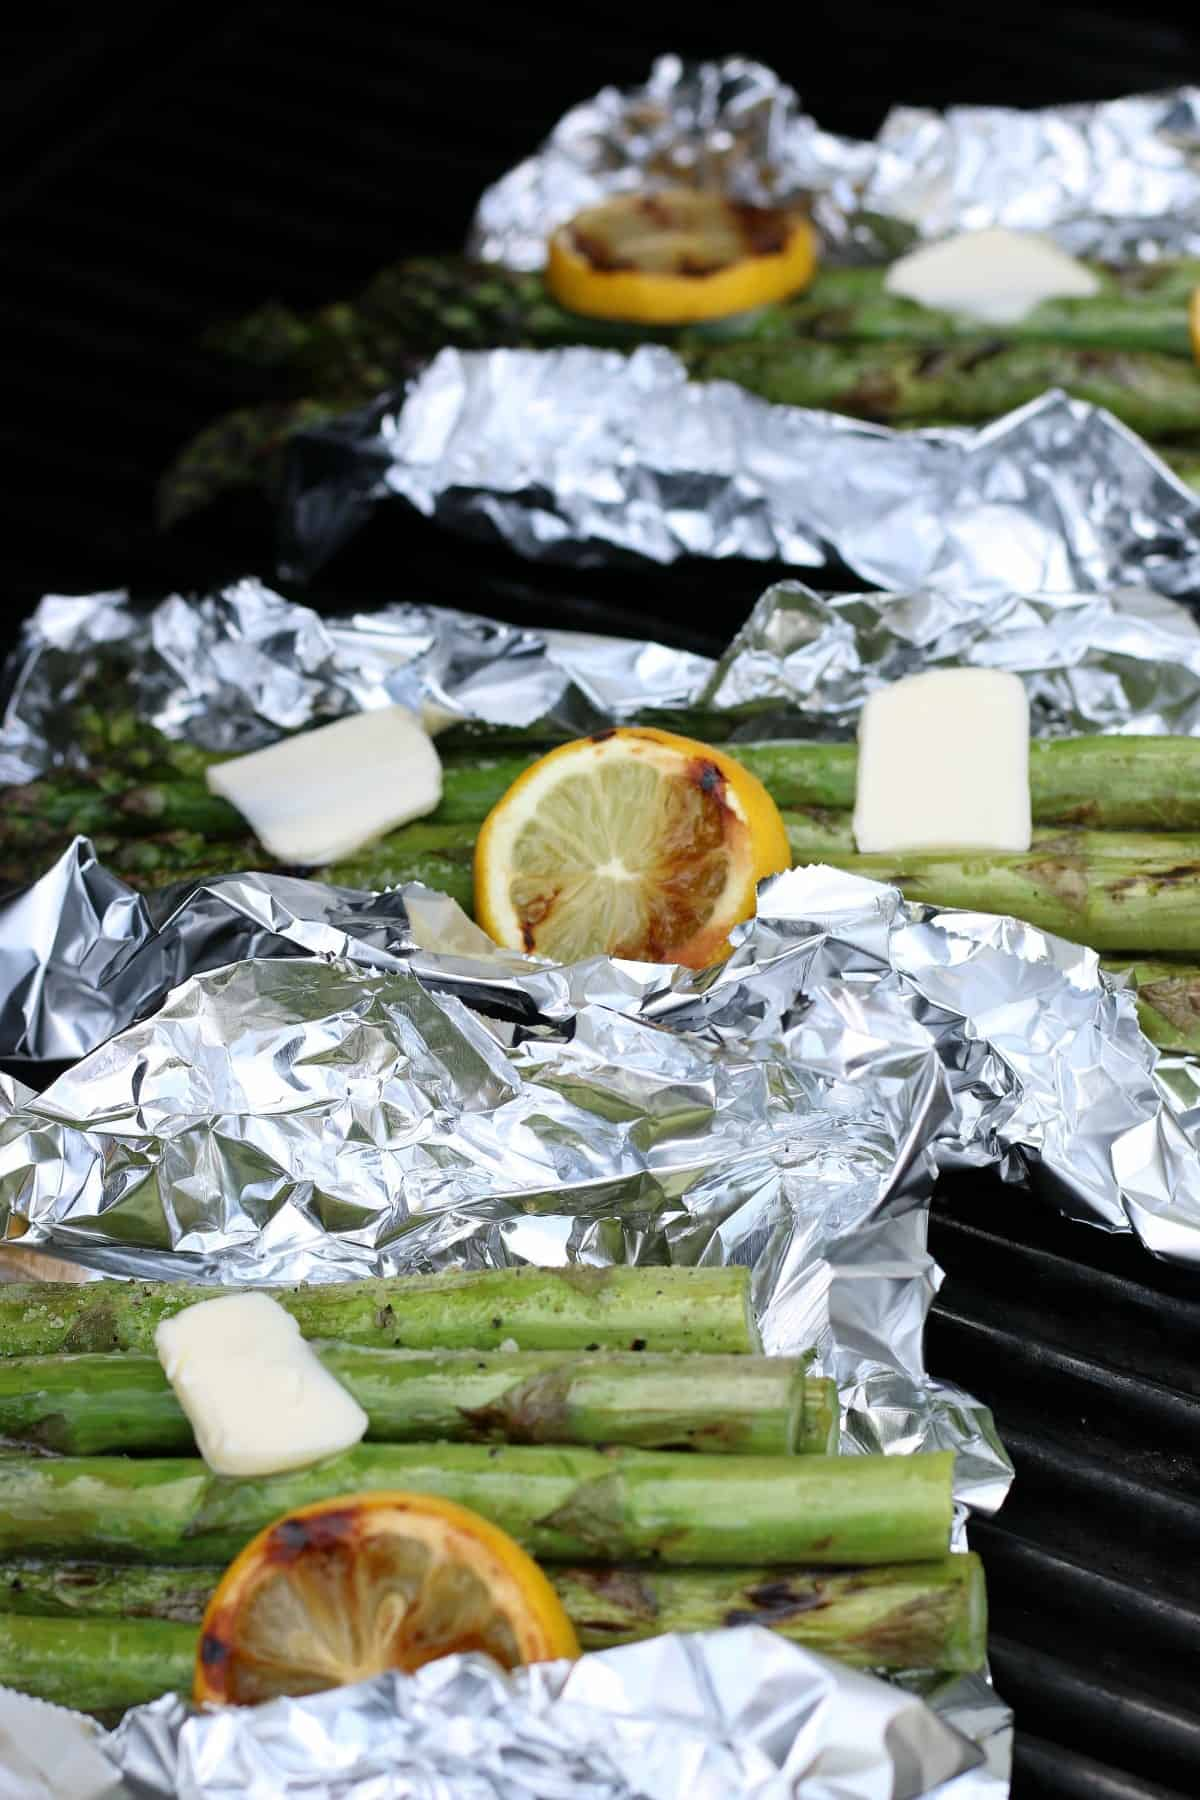 Sideways view showing open foil packets with grilled asparagus with grilled lemon and pats of dairy-free butter on top.